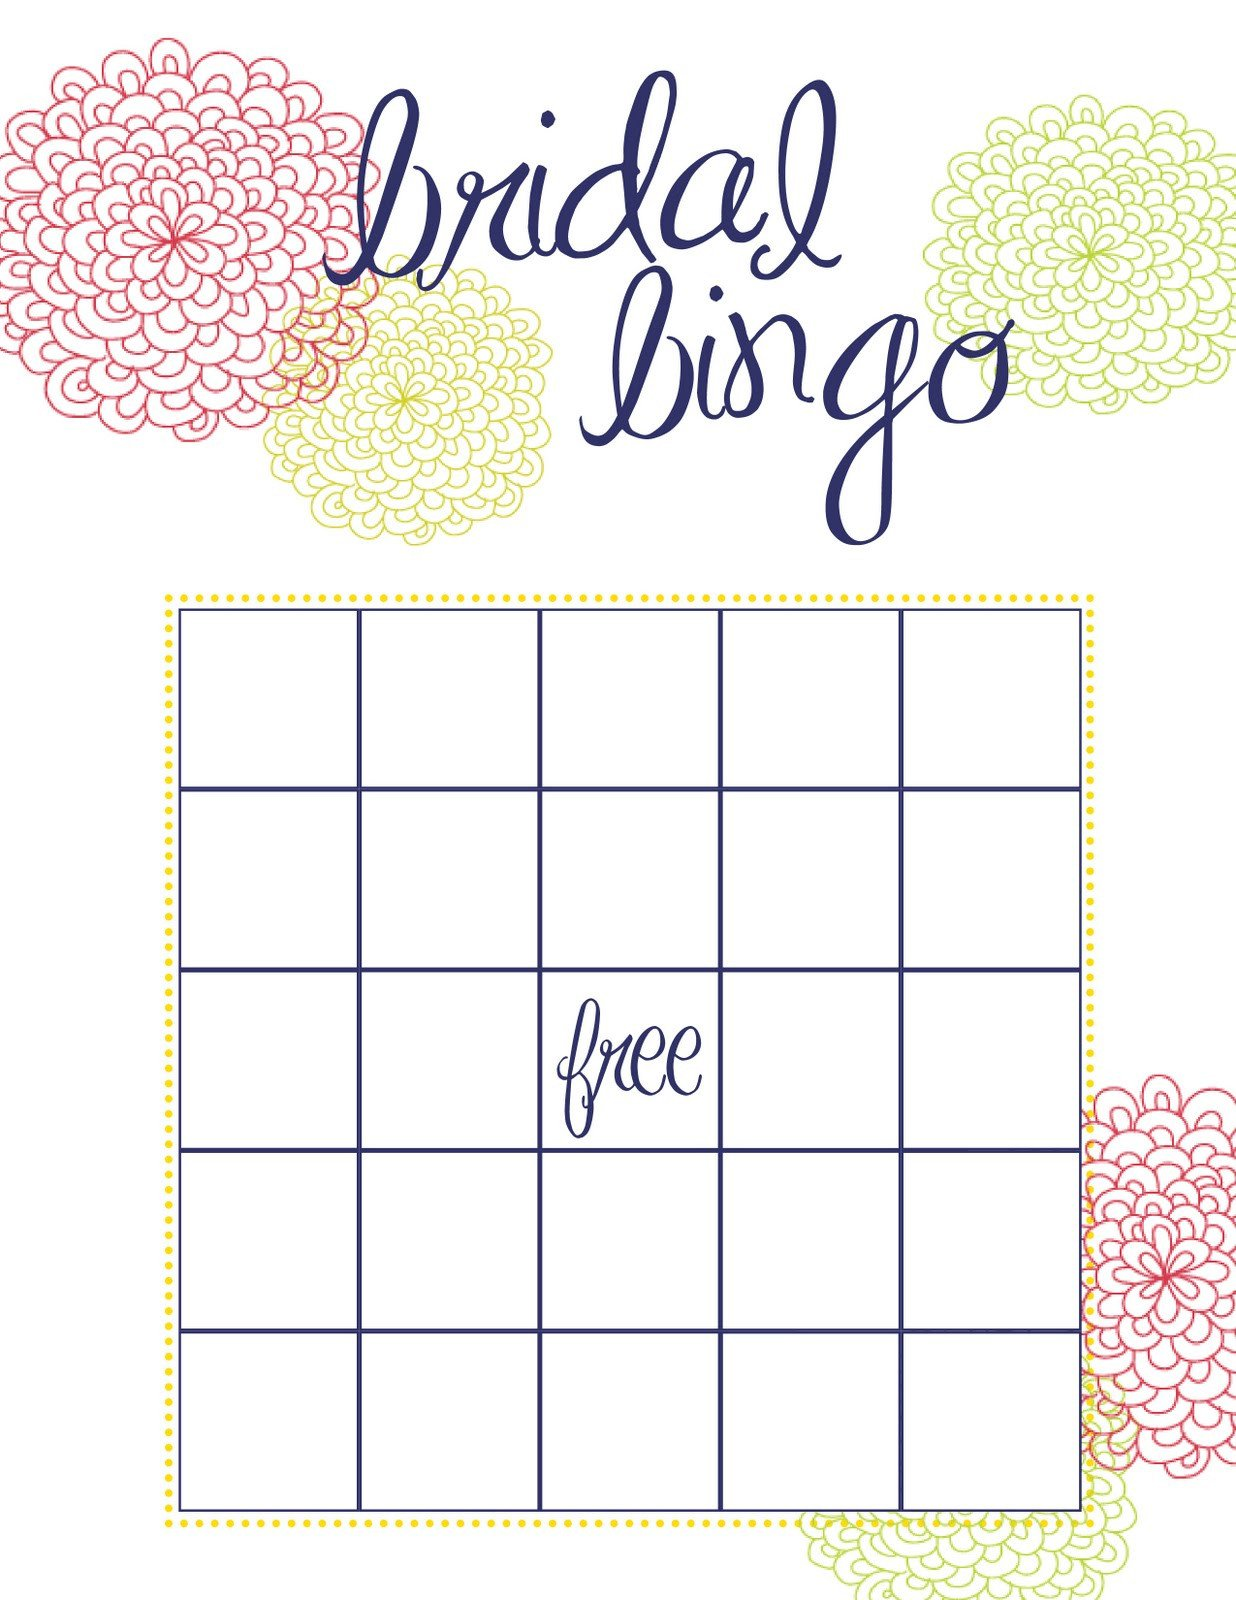 Bridal Bingo Free Template Blank How to Throw the Best Bridal Shower Pretty Happy Love